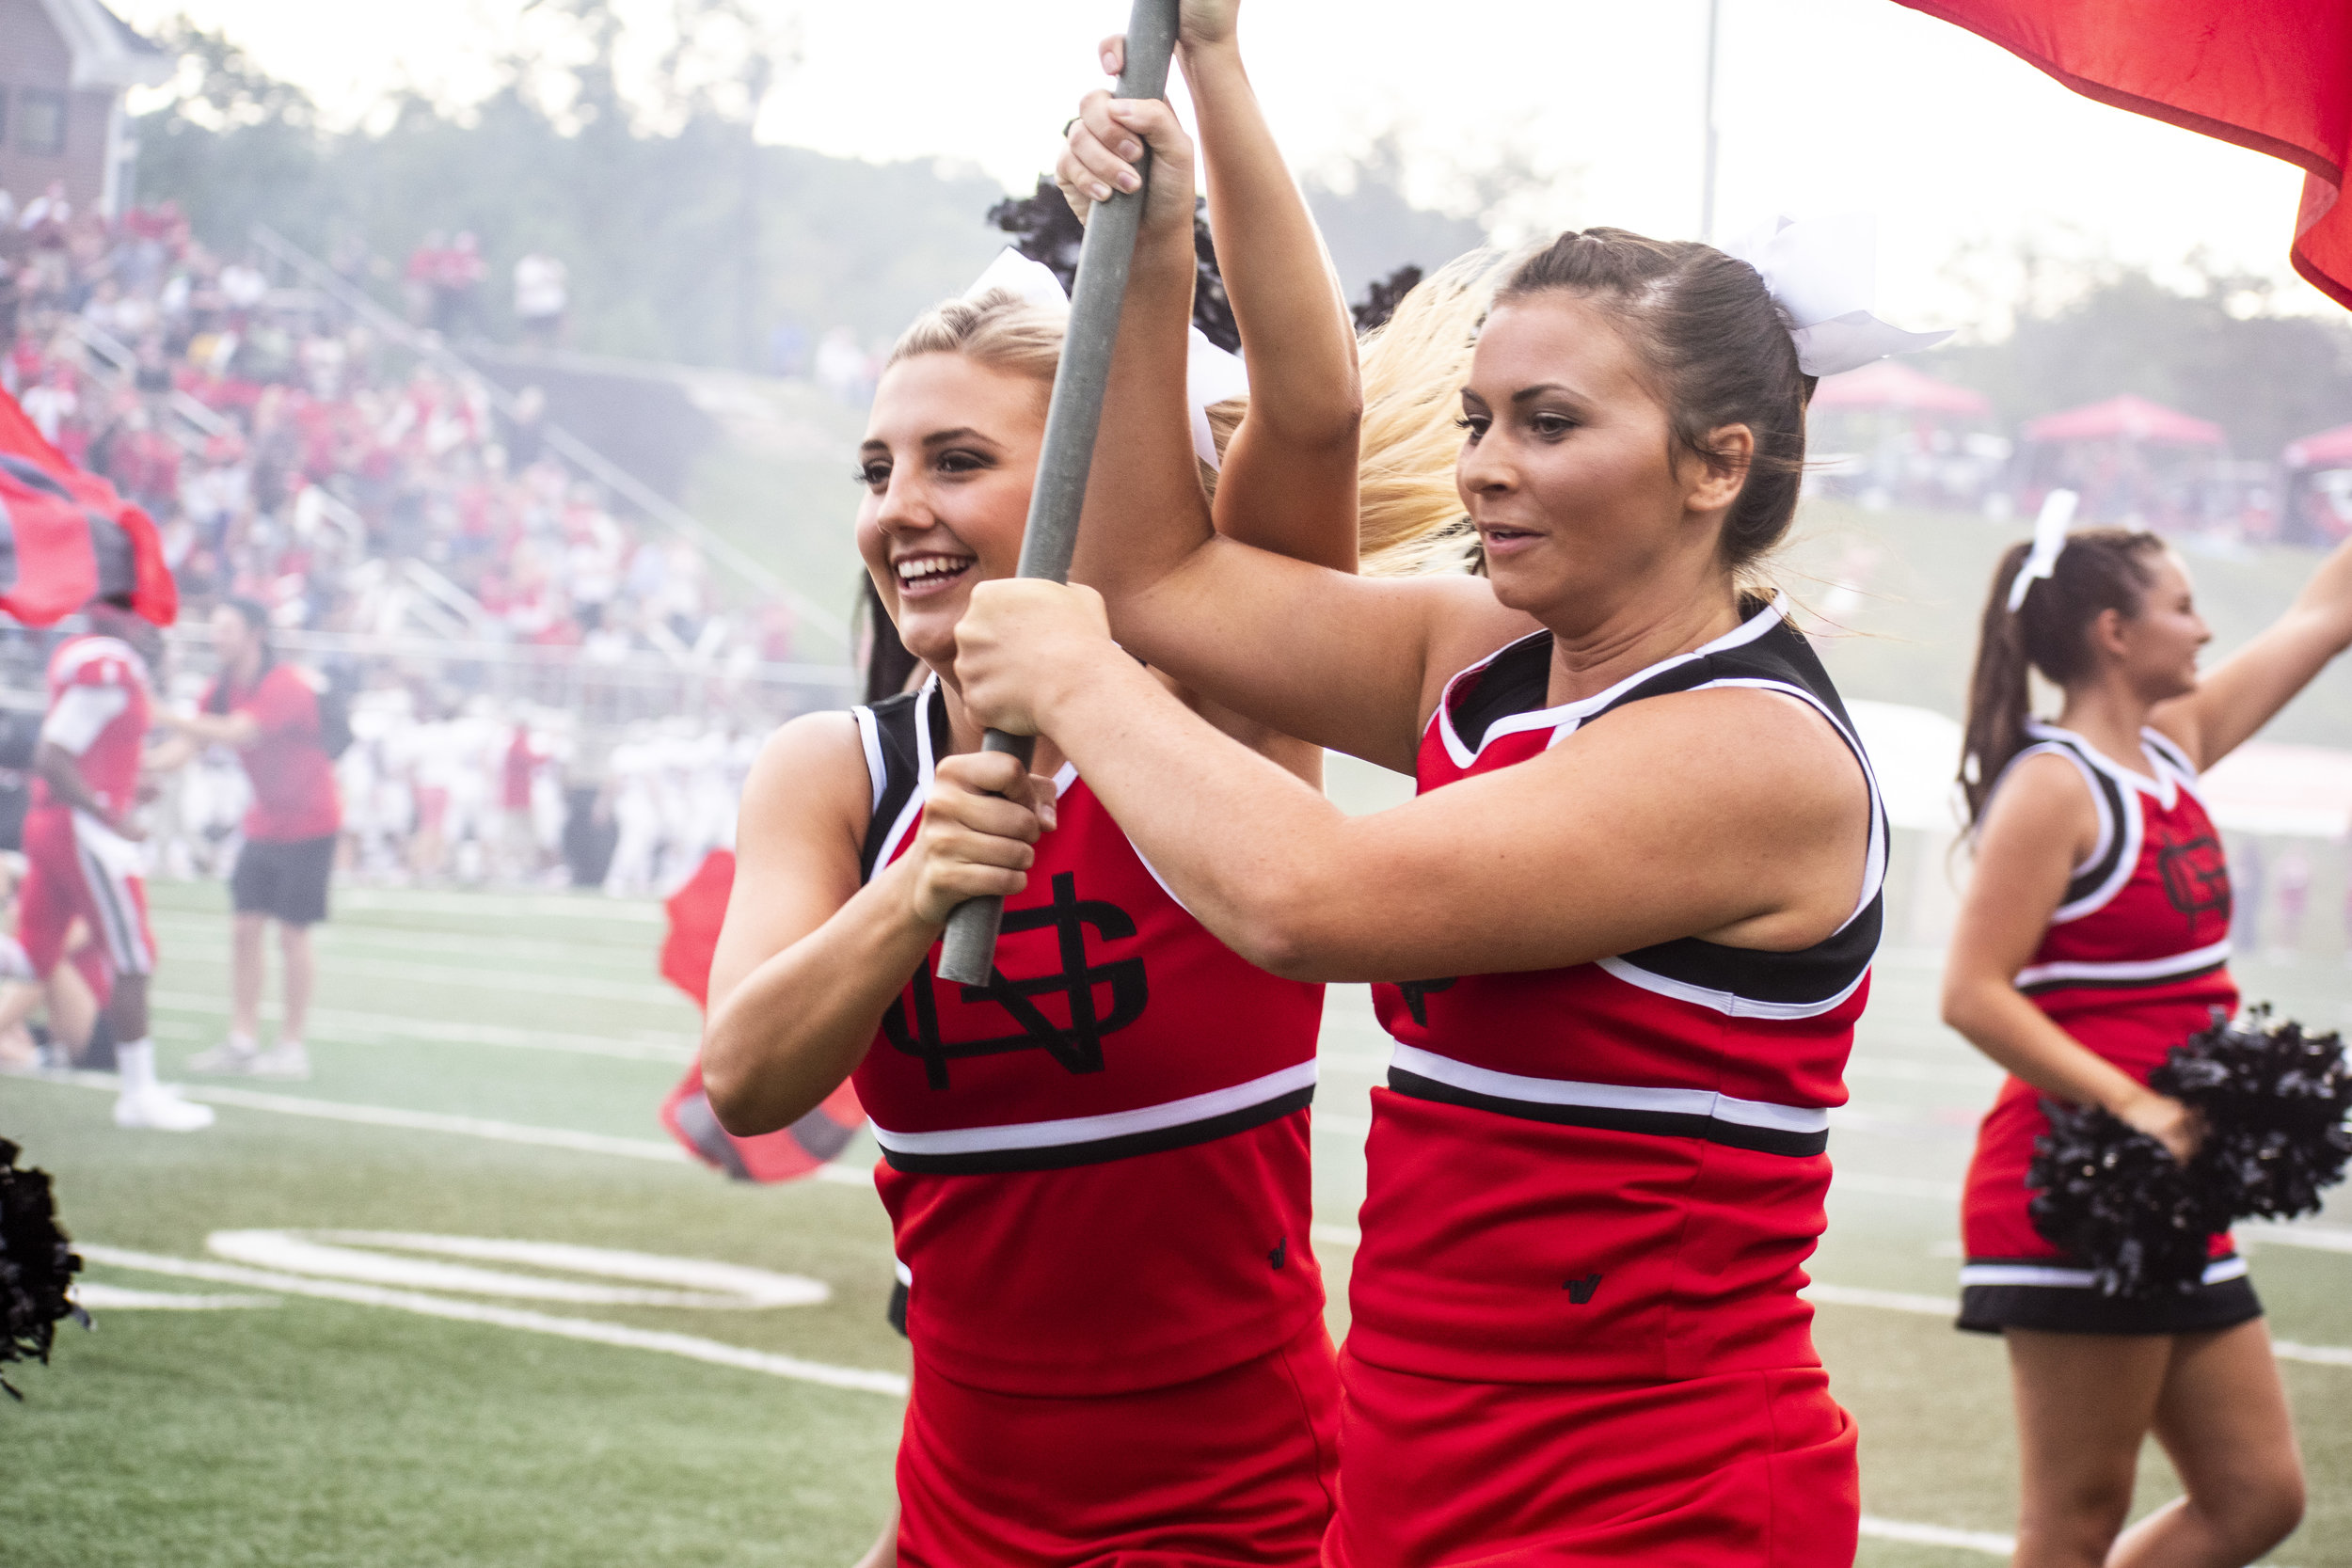 Junior Caitlin Frederiksen and Sophomore Faith Therrell start the game by running down the field with a flag.